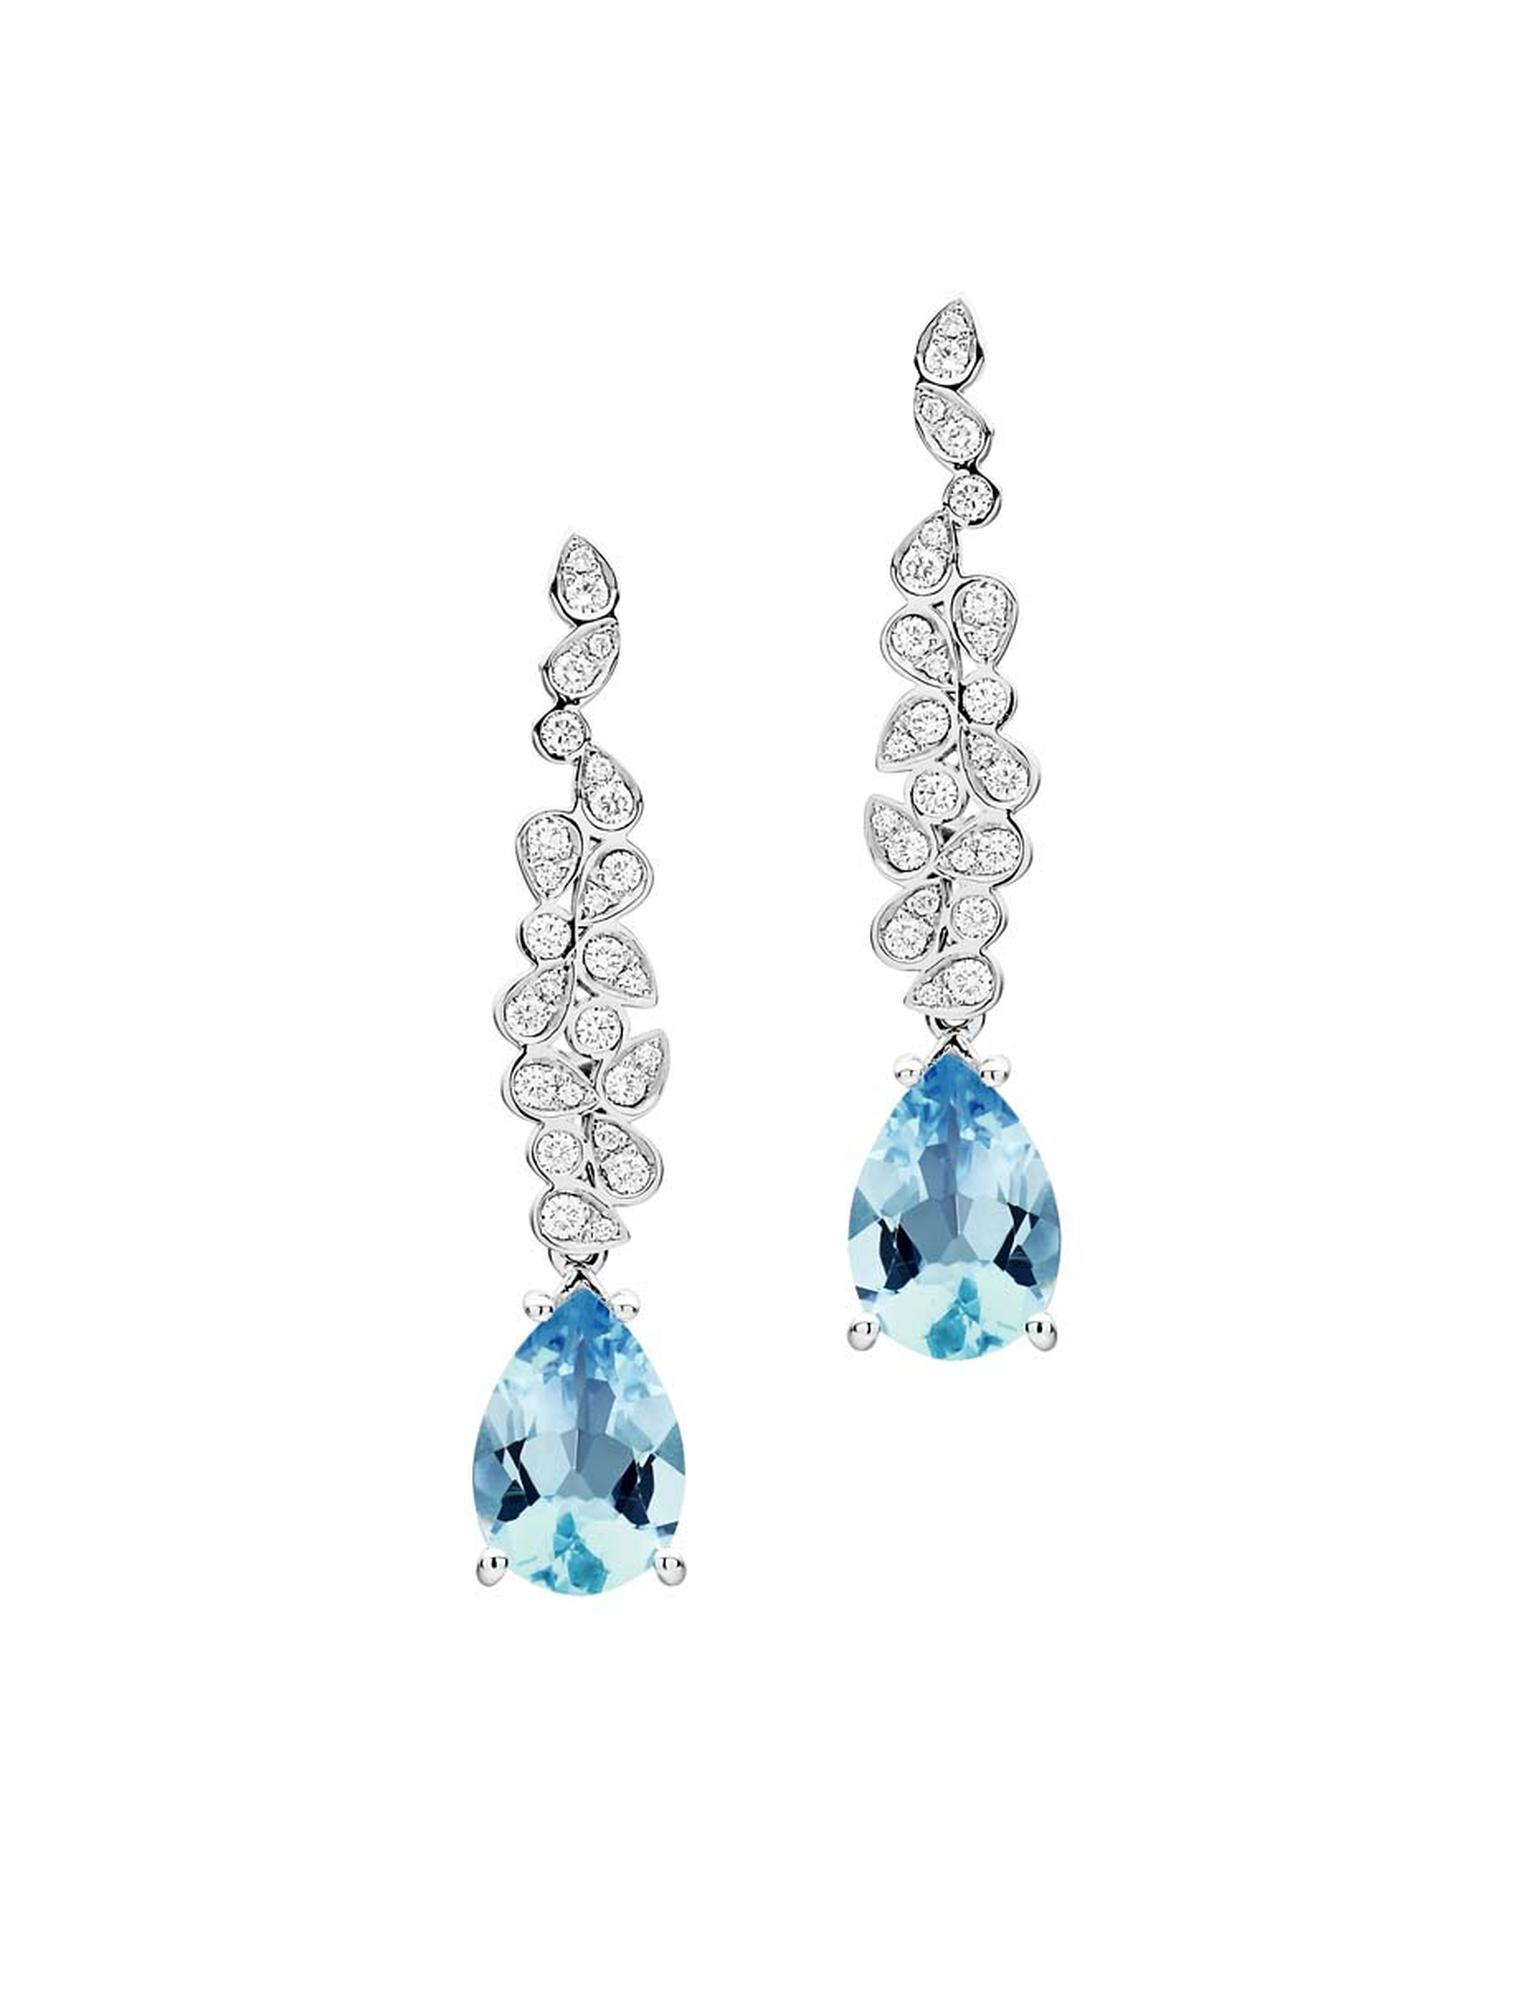 Jan Logan Barcelona detachable aquamarine and diamond earrings ($4,950 AUD).